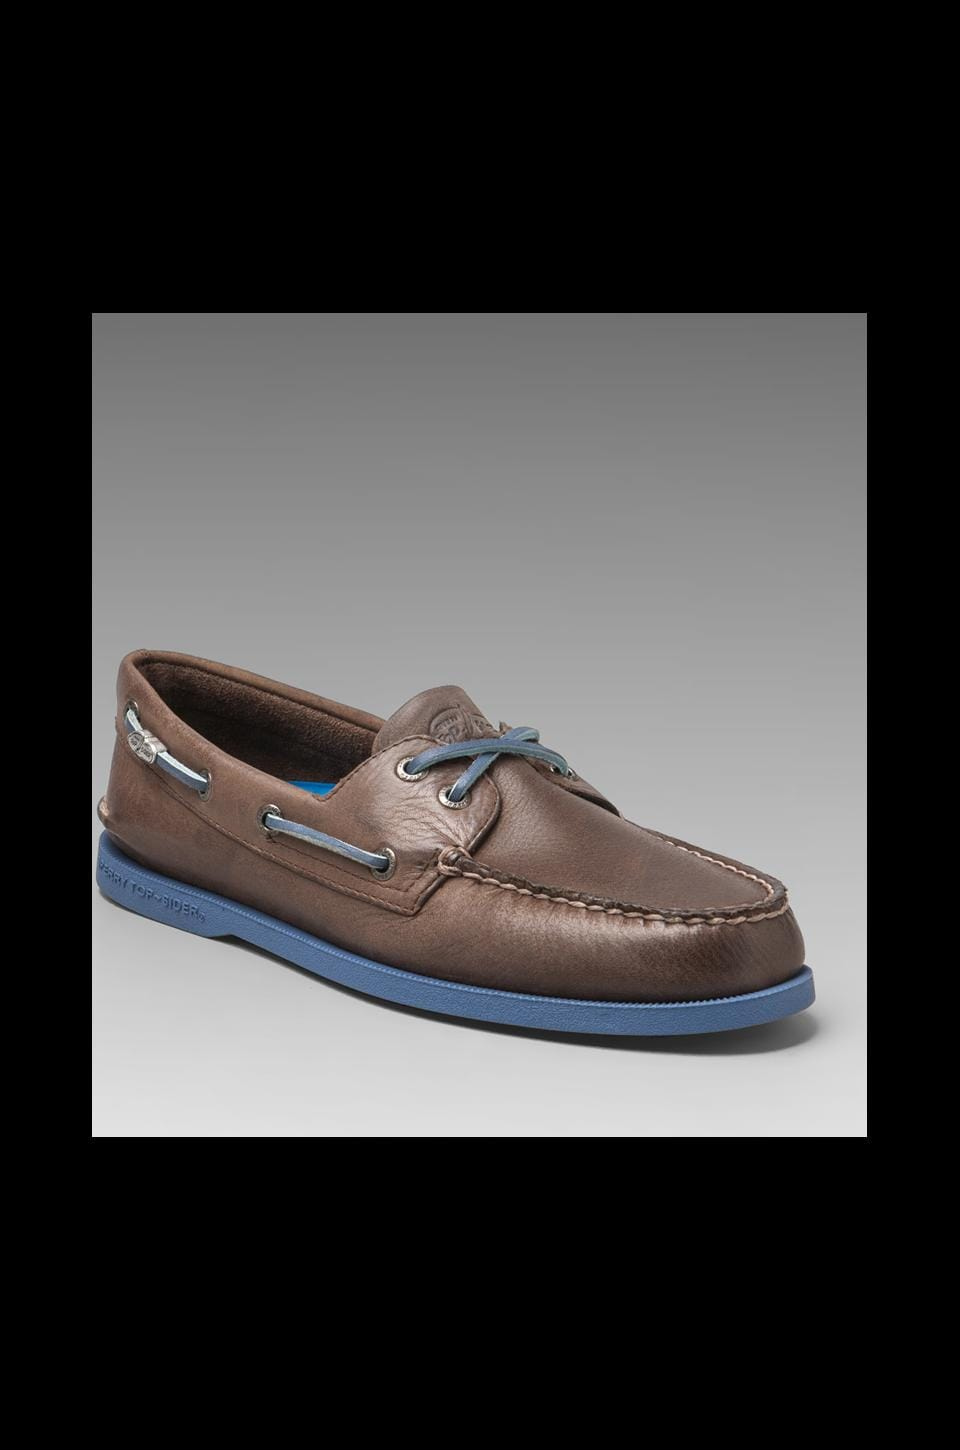 Sperry Top-Sider Cloud Collection Burnished A/O 2-Eye in Brown